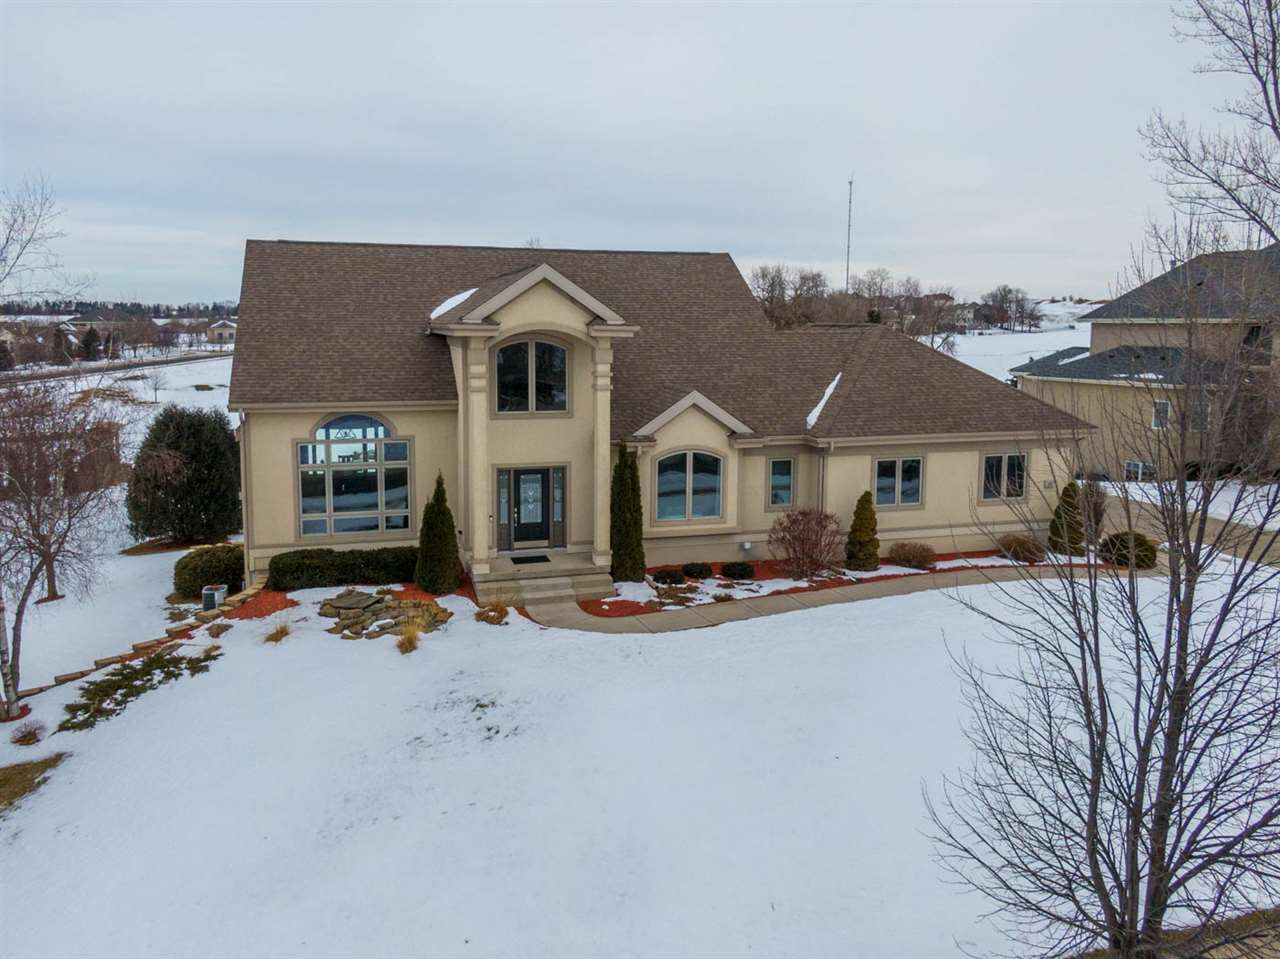 10 Kingswood Cir, Verona, WI 53593 - #: 1874849